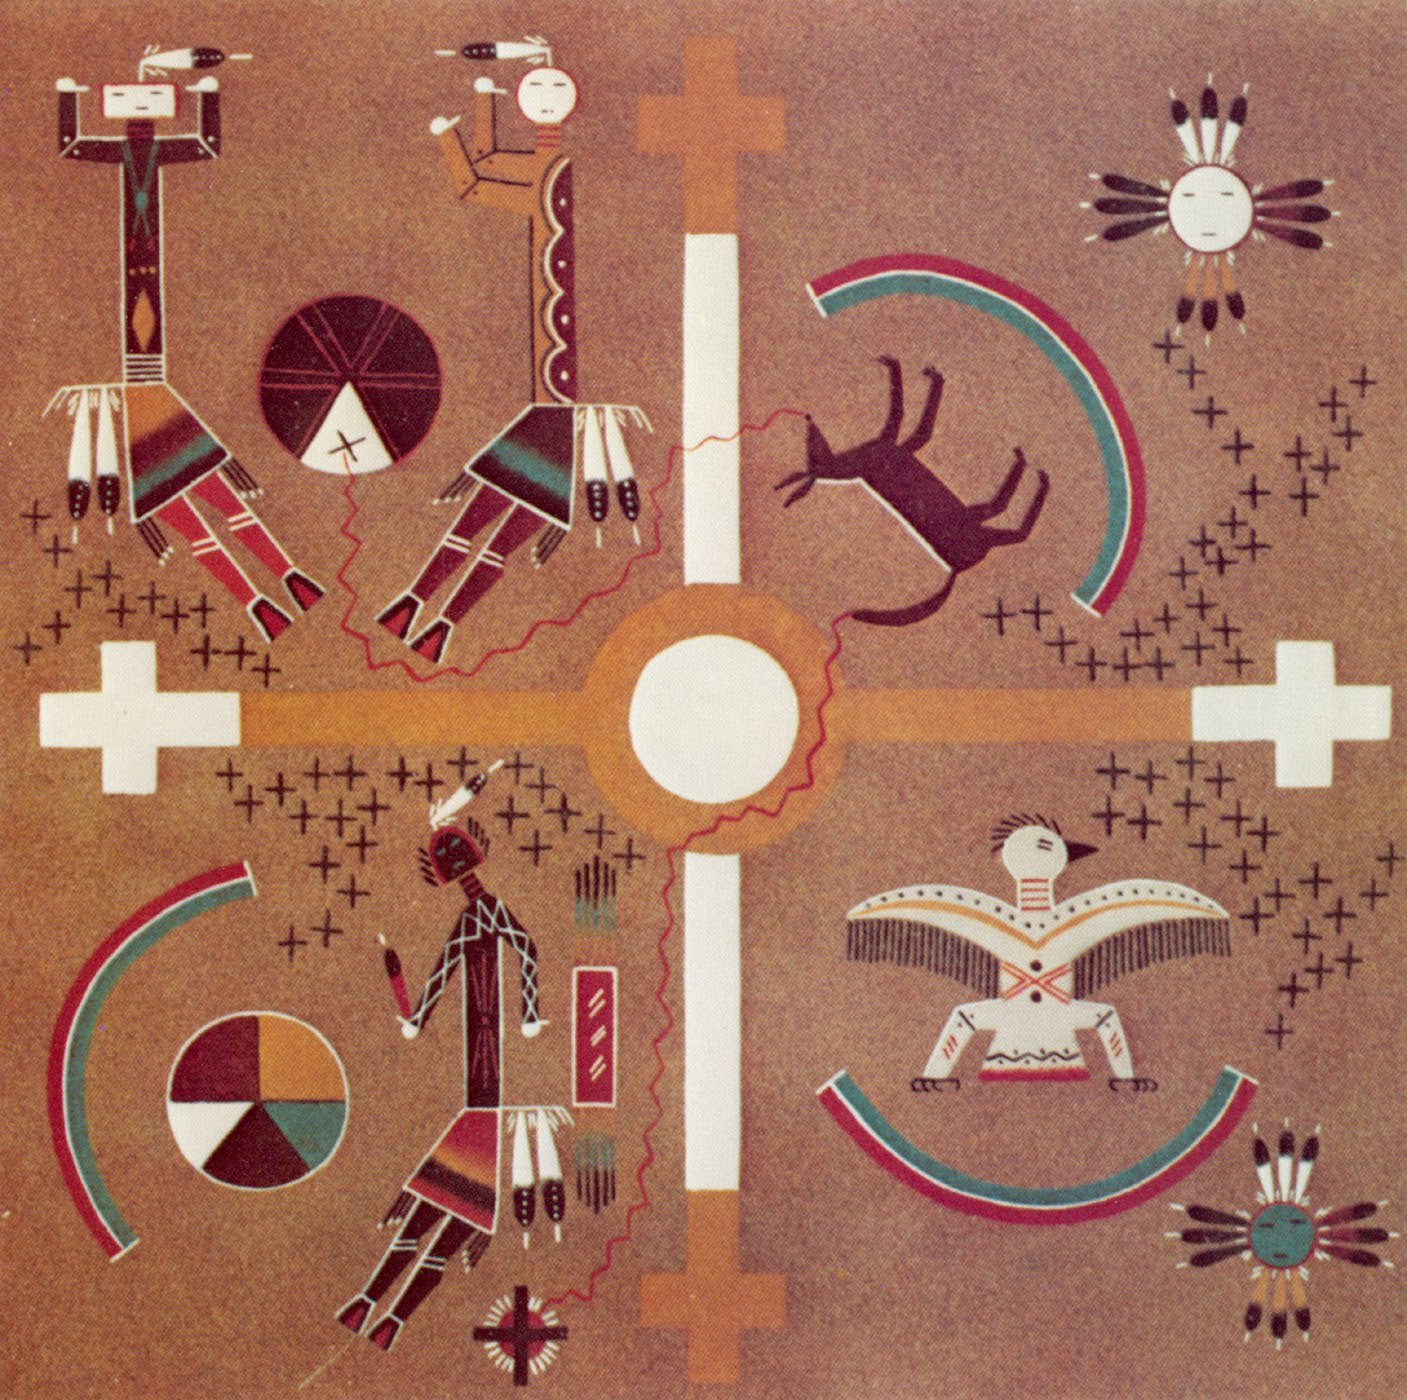 navajo creation story The navajo creation story involves three underworlds where important events happened to shape the fourth world where we now live the navajo were given the name ni'hookaa diyan dine by their creators it means 'holy return to native american.